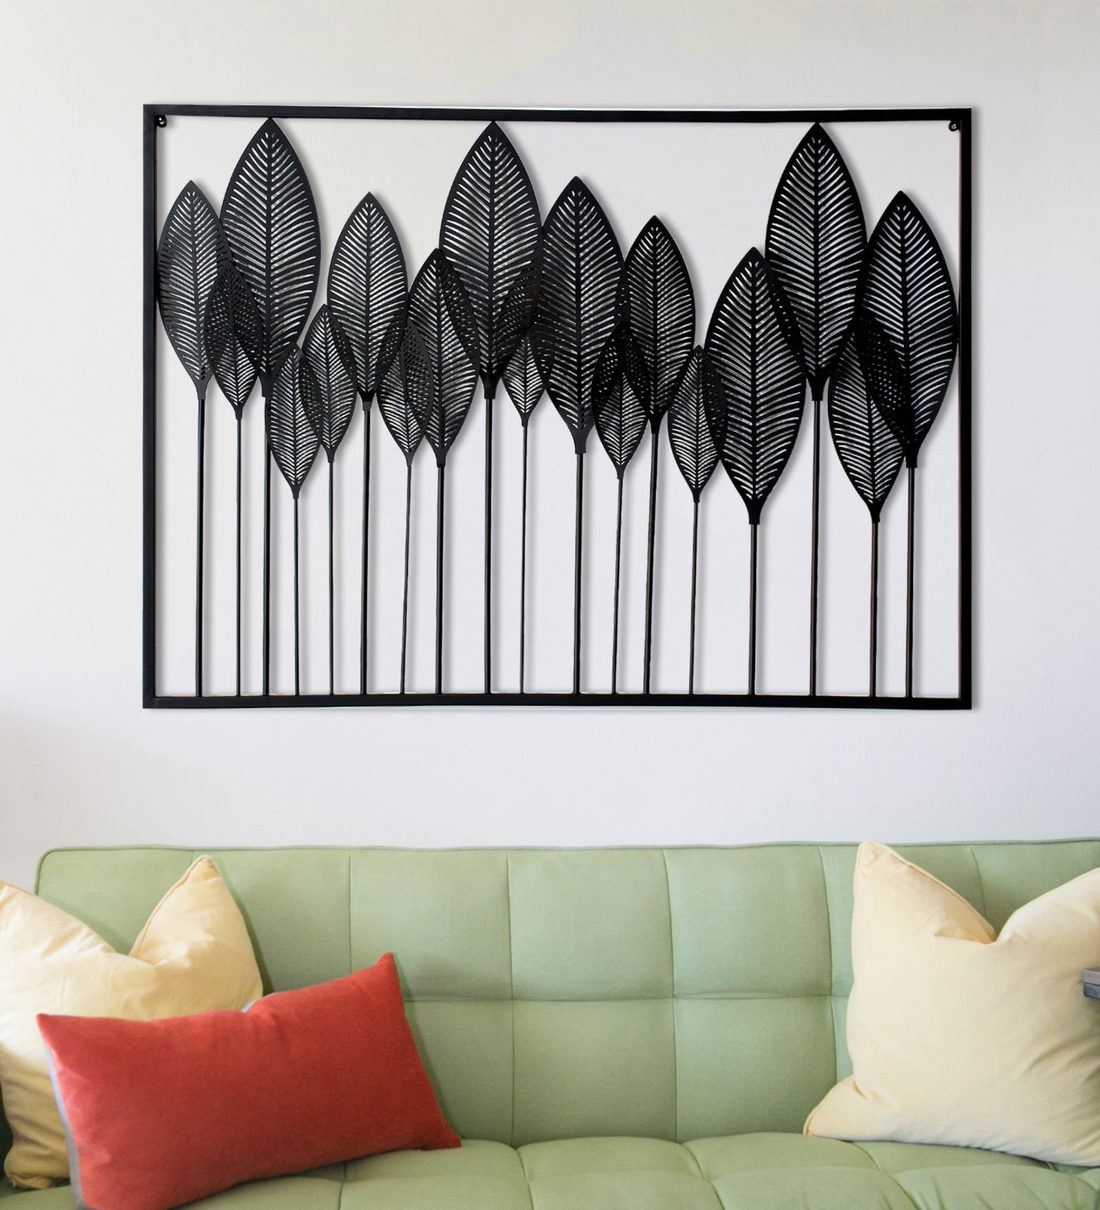 Image of: Buy Wrought Iron Decorative In Black Wall Art By Craftter Online Floral Metal Art Metal Wall Art Home Decor Pepperfry Product